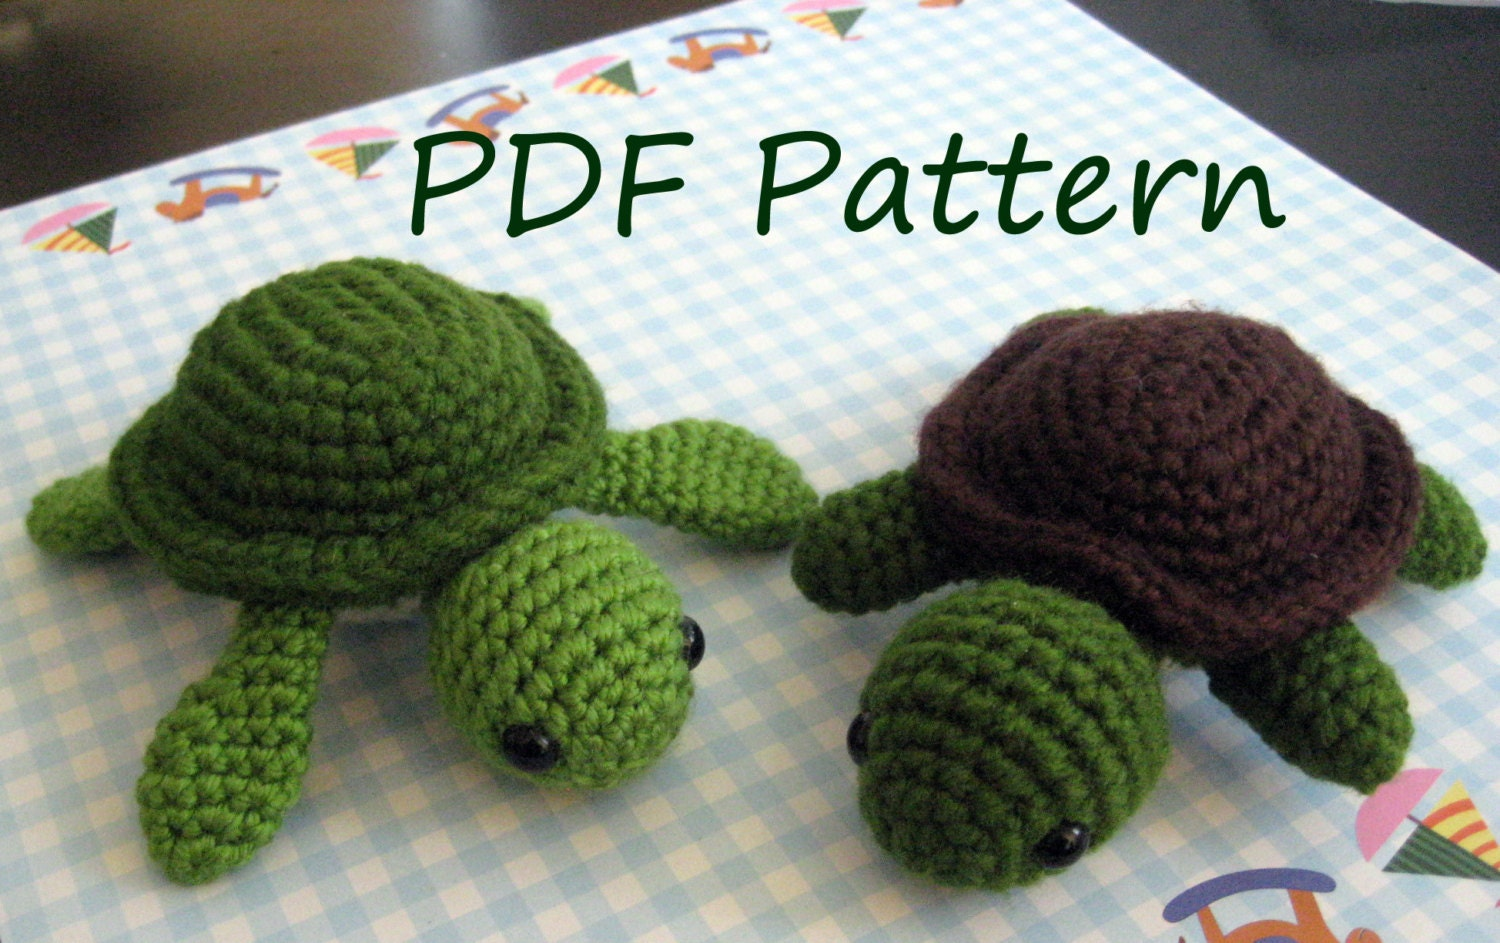 Amigurumi Crochet Pattern : The turtle amigurumi crochet pattern pdf